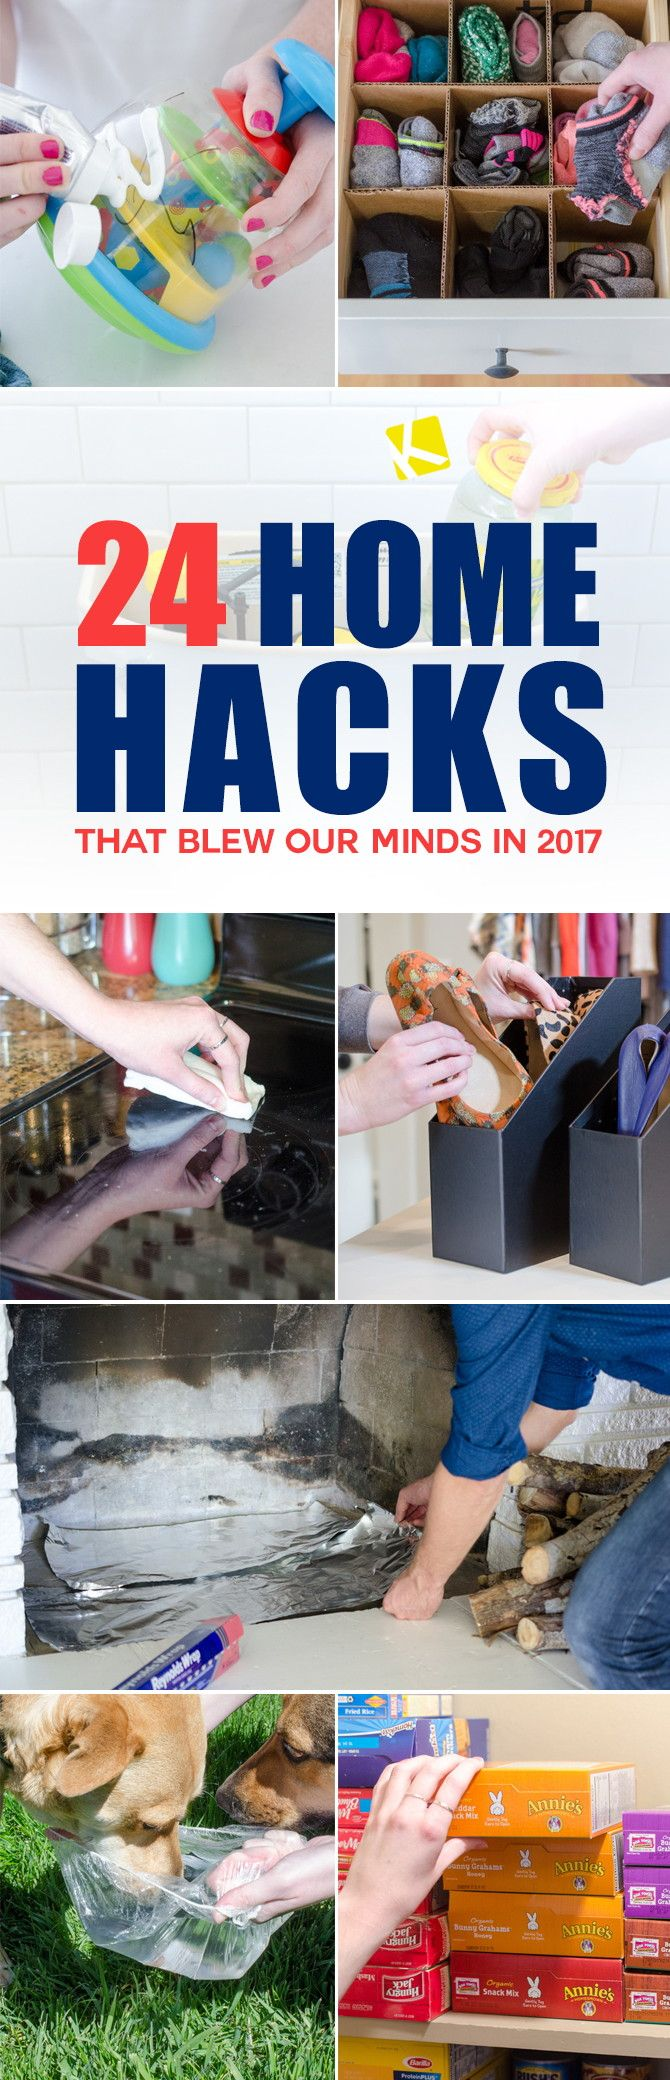 24 Home Hacks That Blew Our Minds in 2017